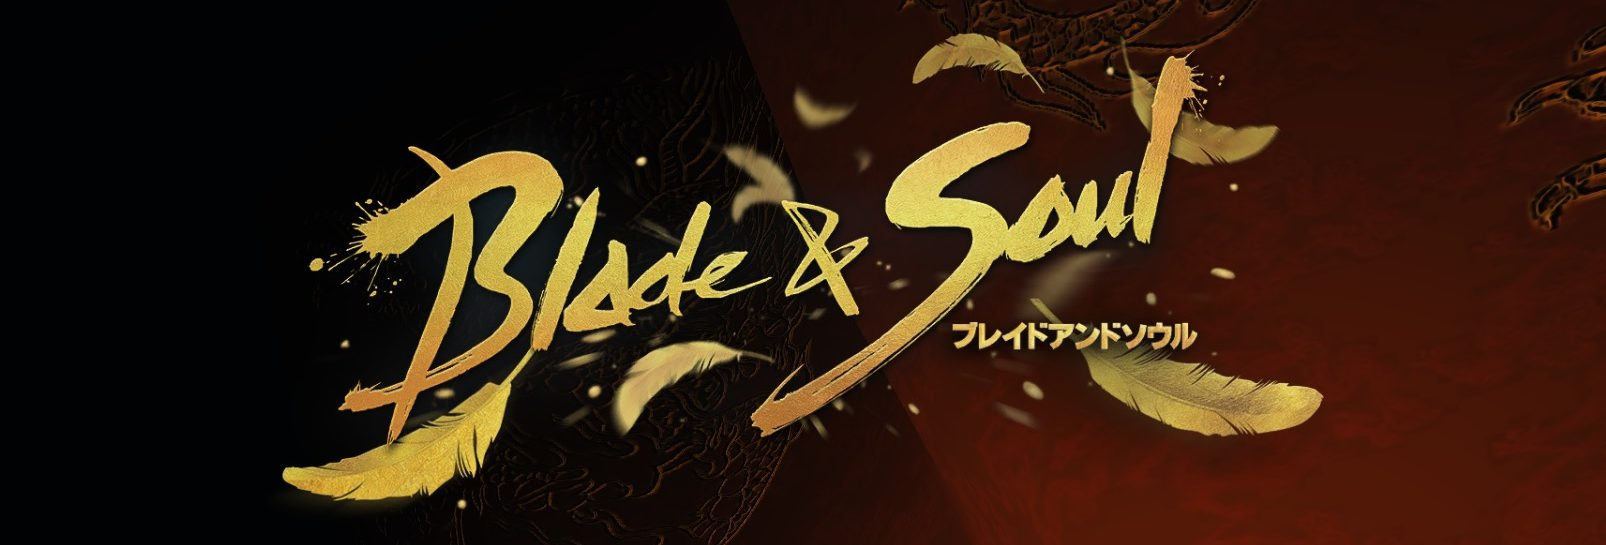 Epica's blade and soul diary